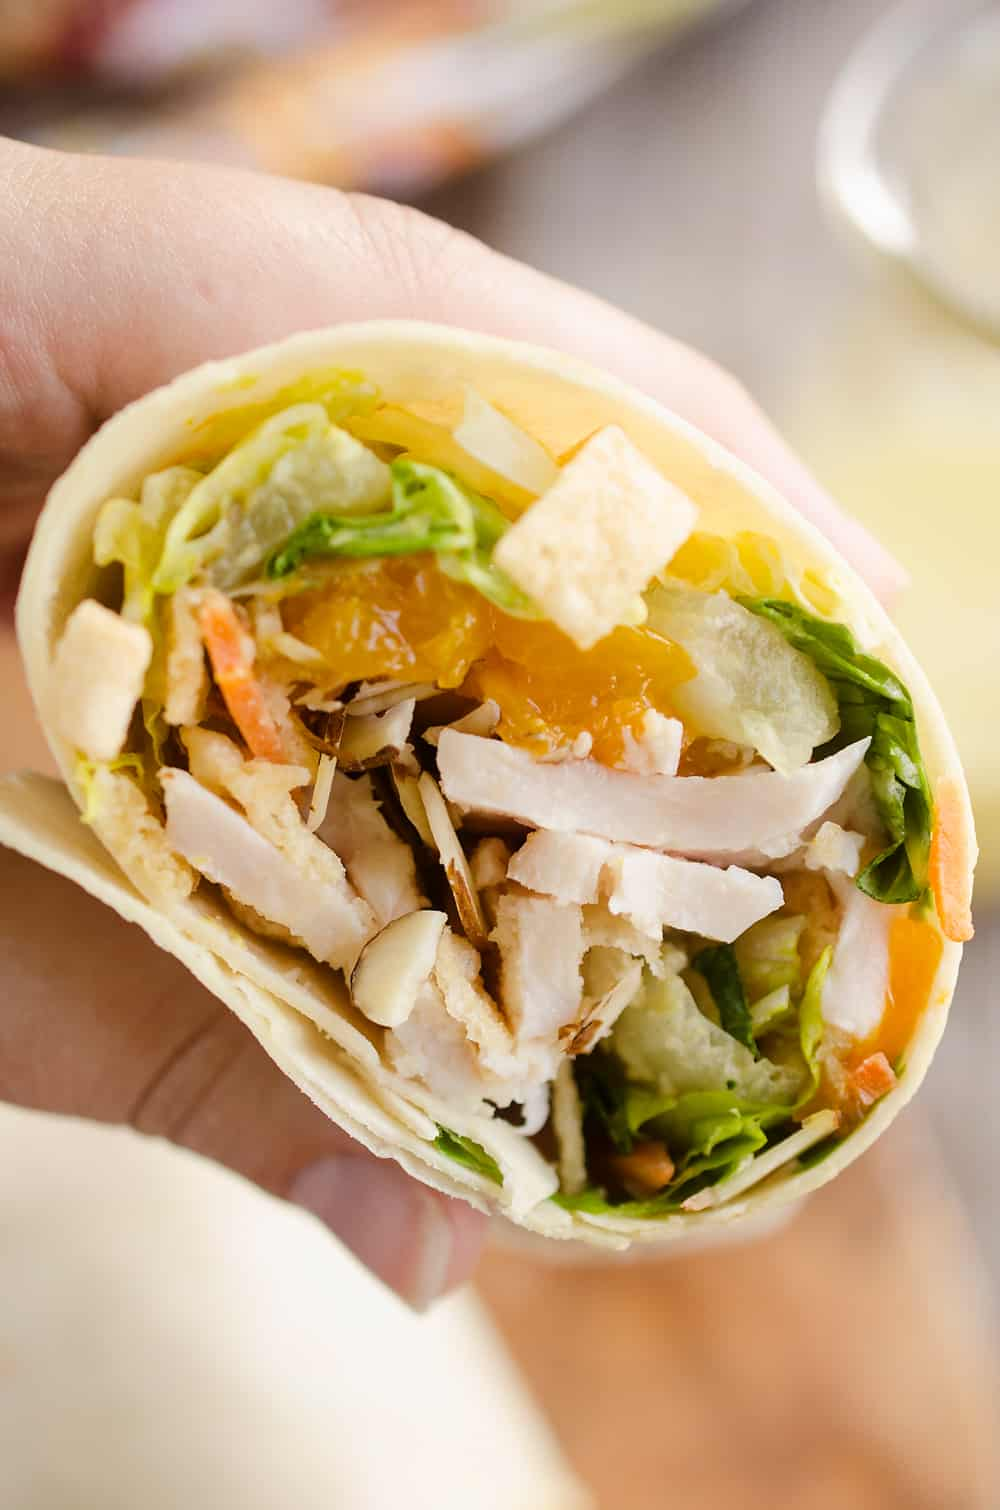 Light & Crunchy Orange Chicken Wrap